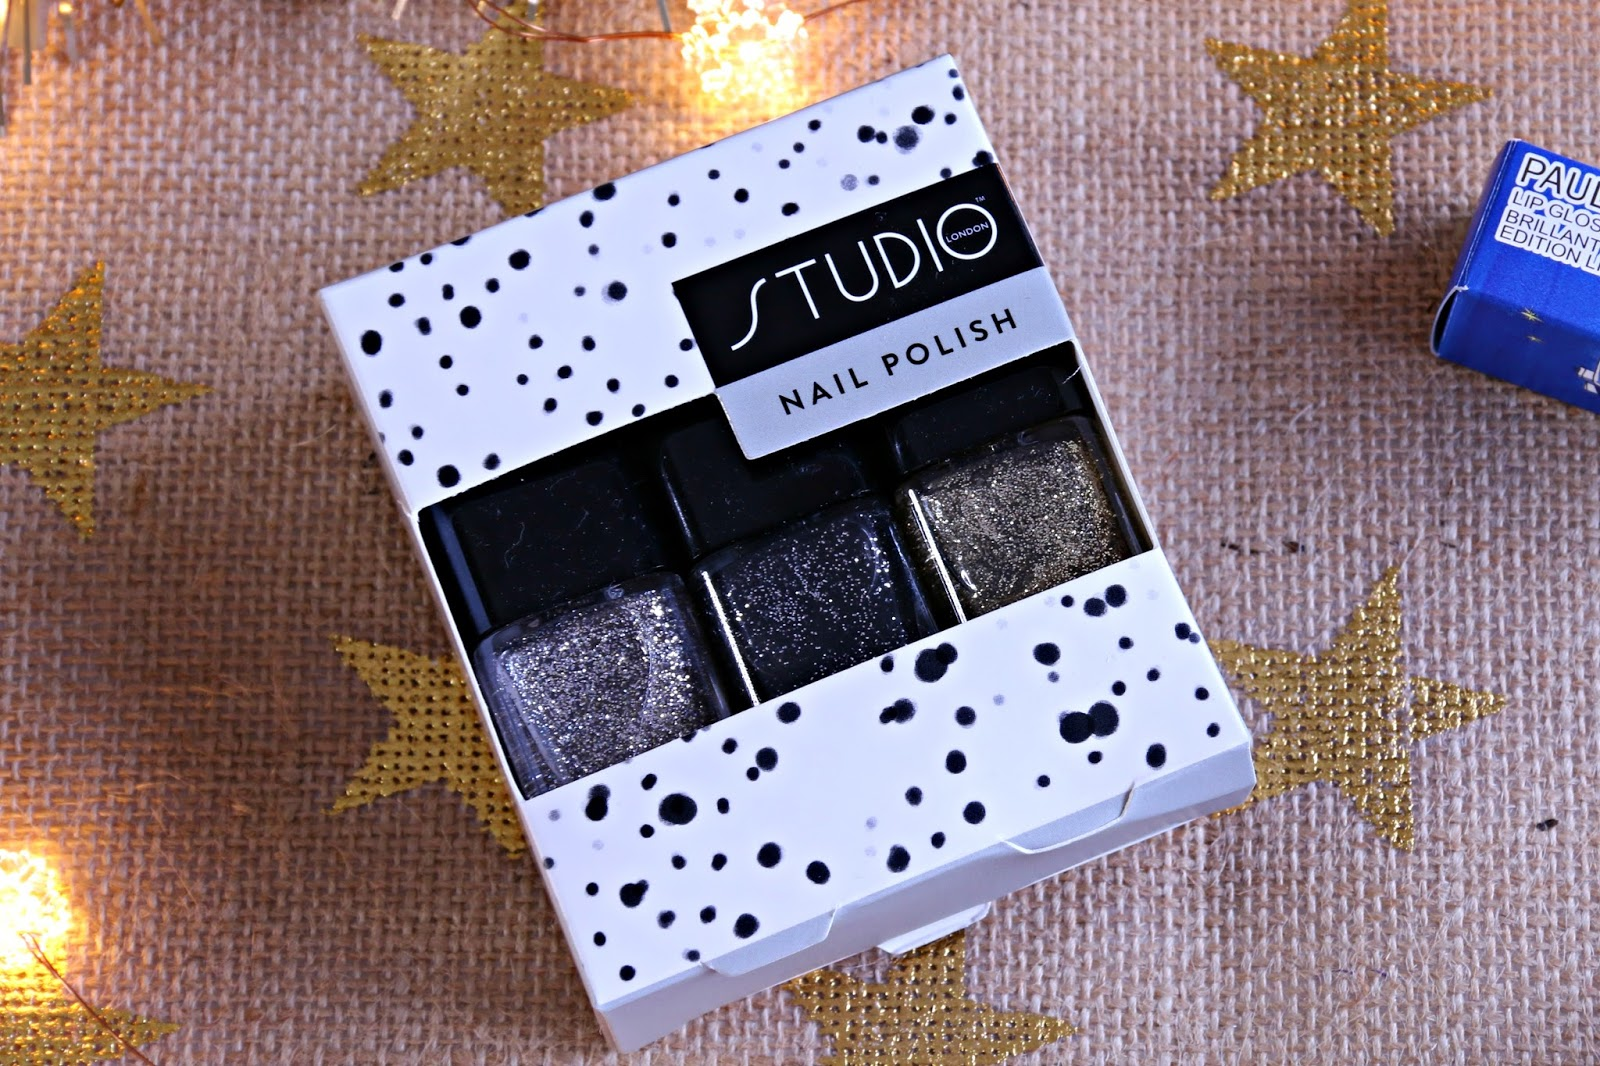 Superdrug Studio London Nail Polish Trio Image